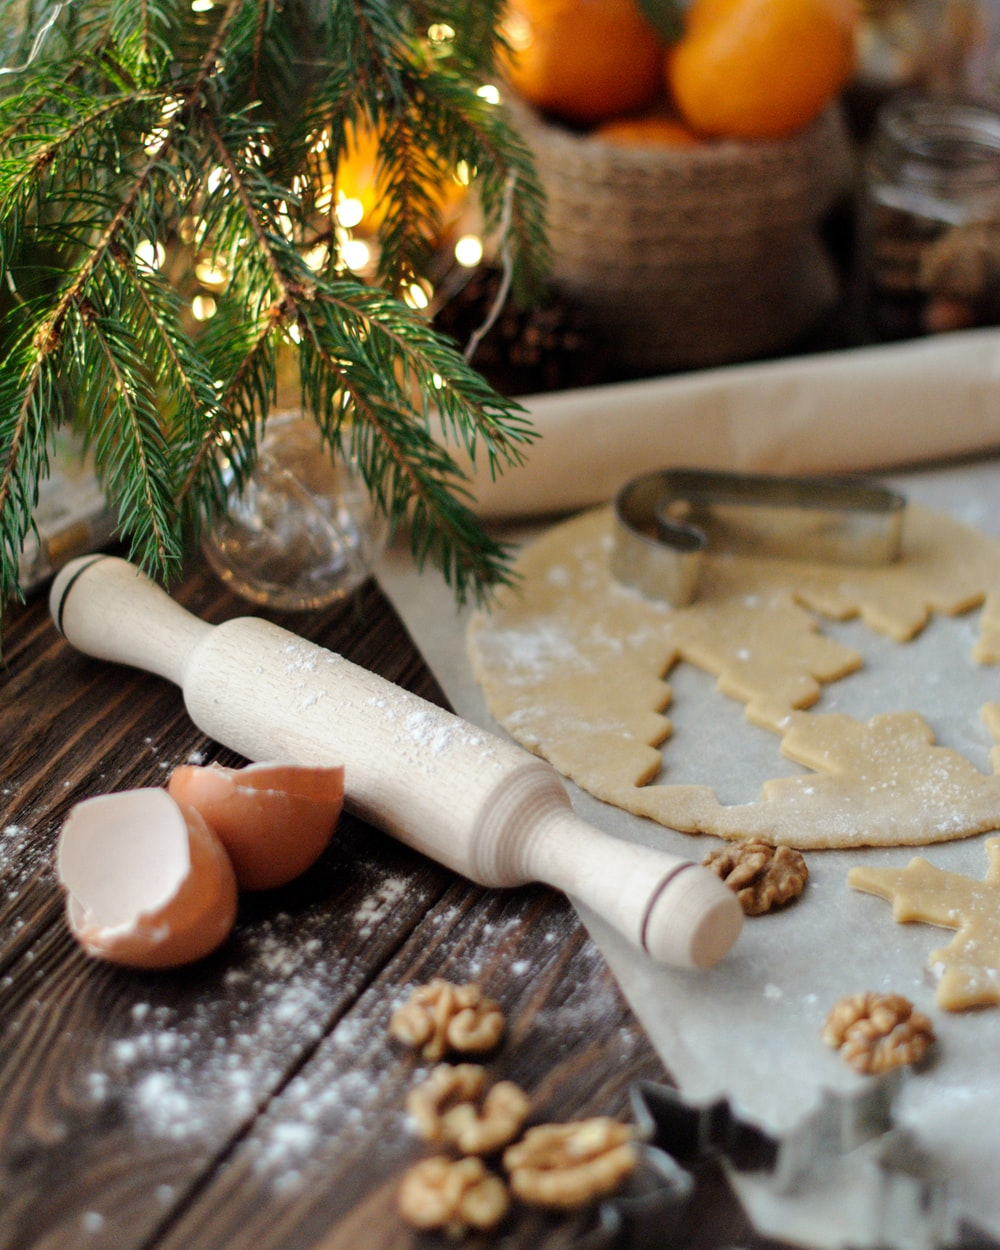 white wooden rolling pin near dough, egg shell, orange fruits, and walnuts